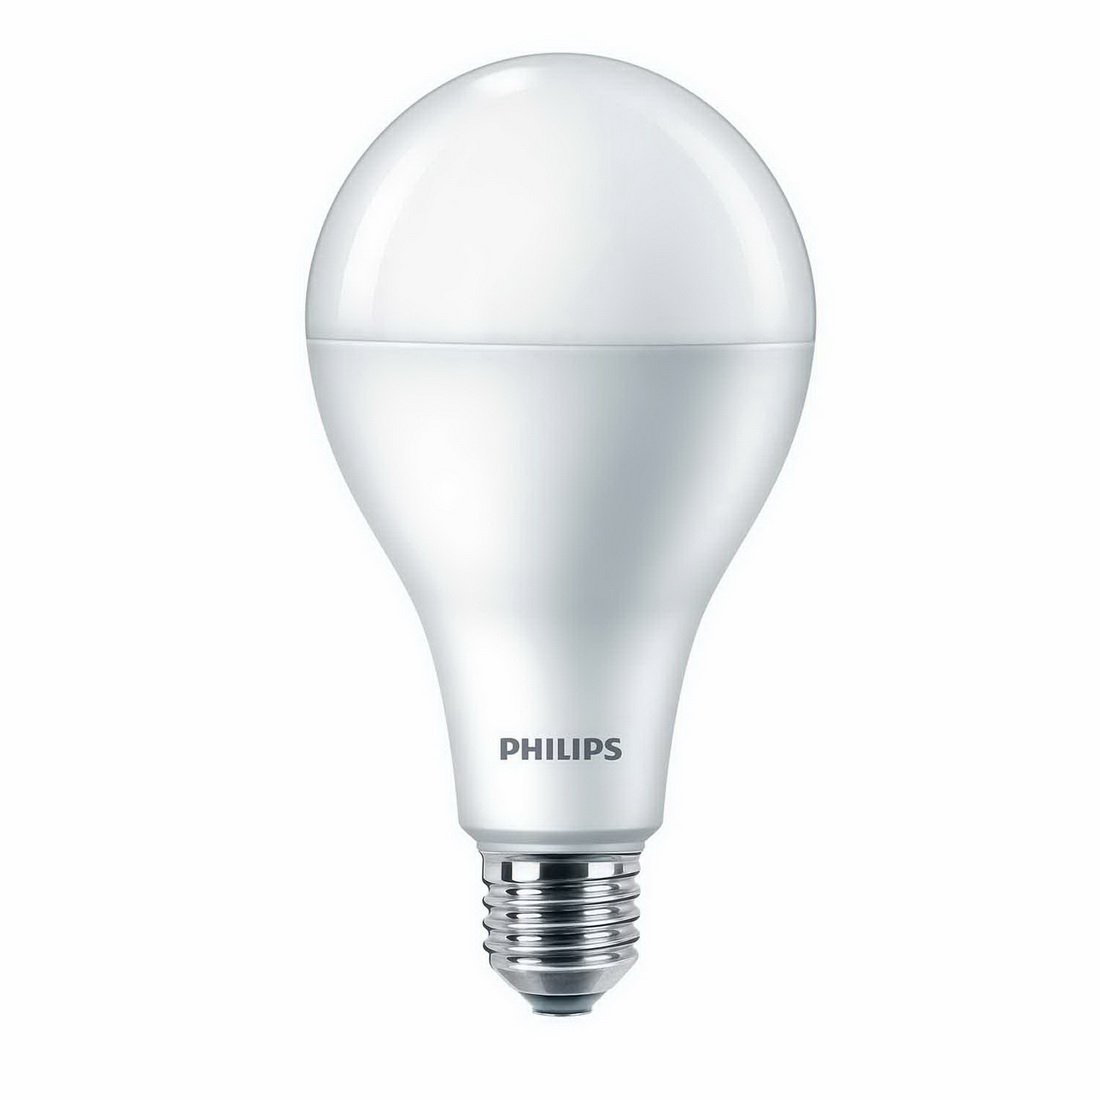 19W 230V 2300lm E27 6500K A80 Non-Dimmable High Lumen LED Bulb Cool Daylight